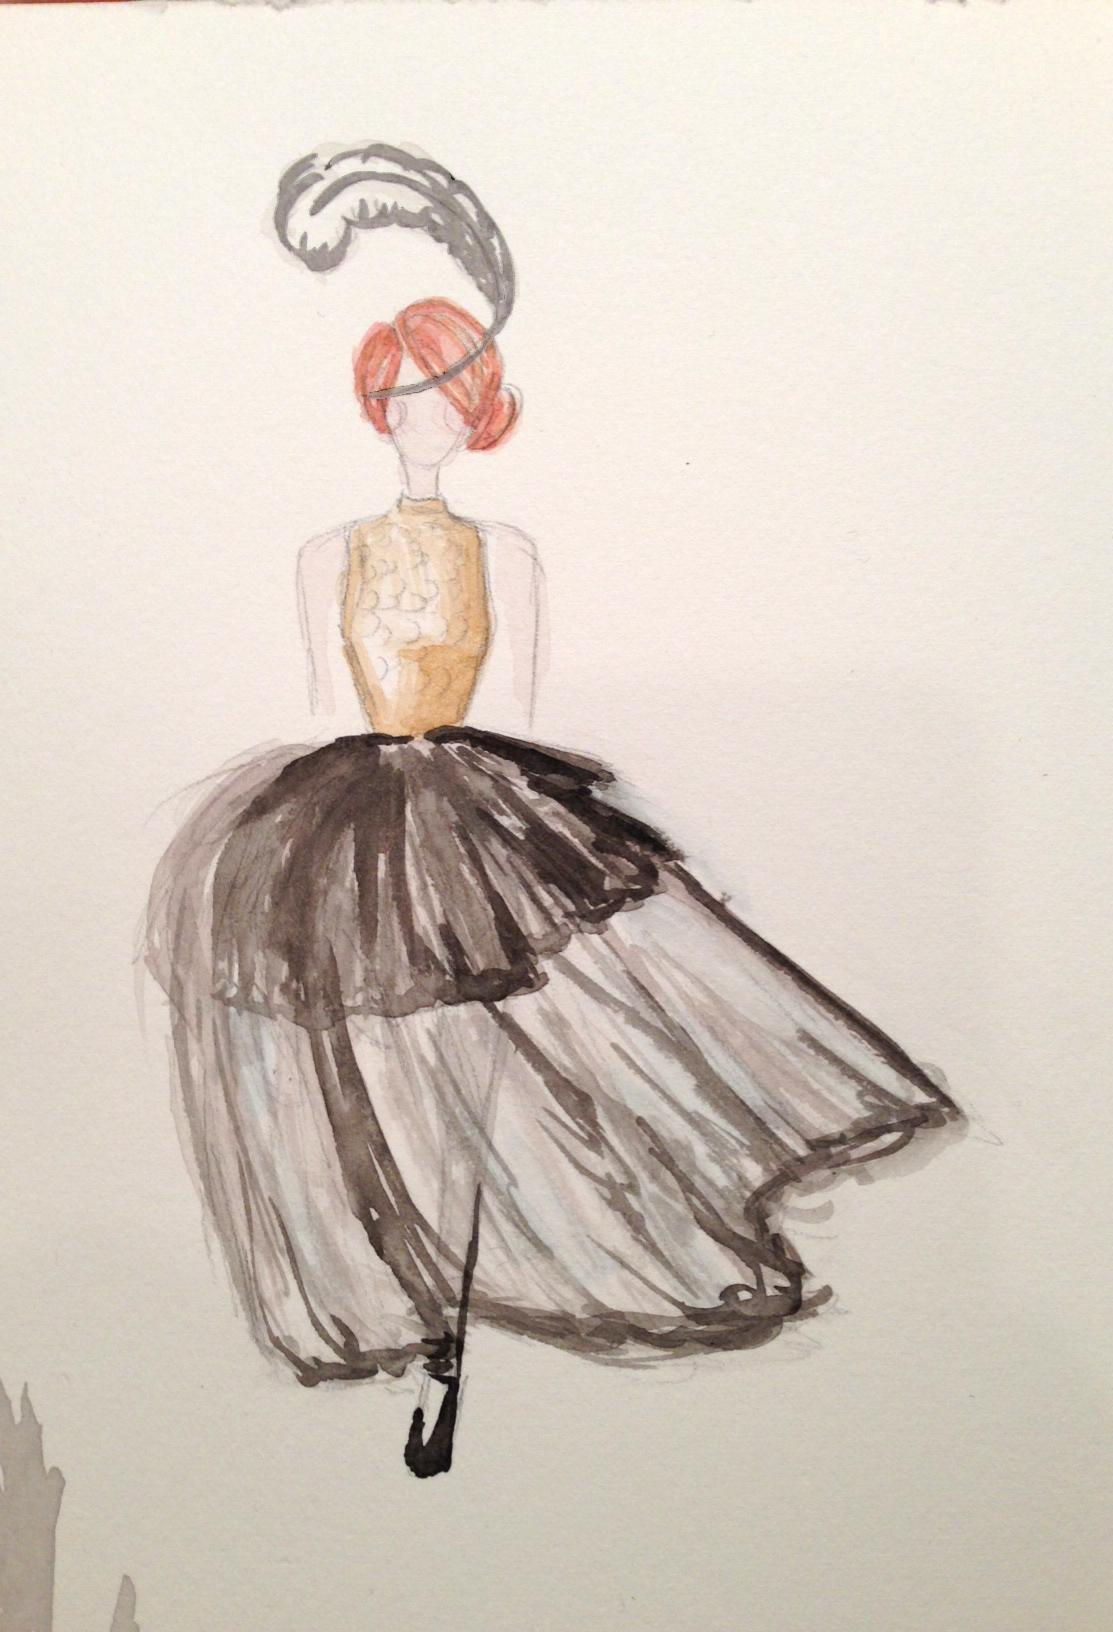 [WATERCOLOR - awaiting embellishments] french school - image 18 - student project